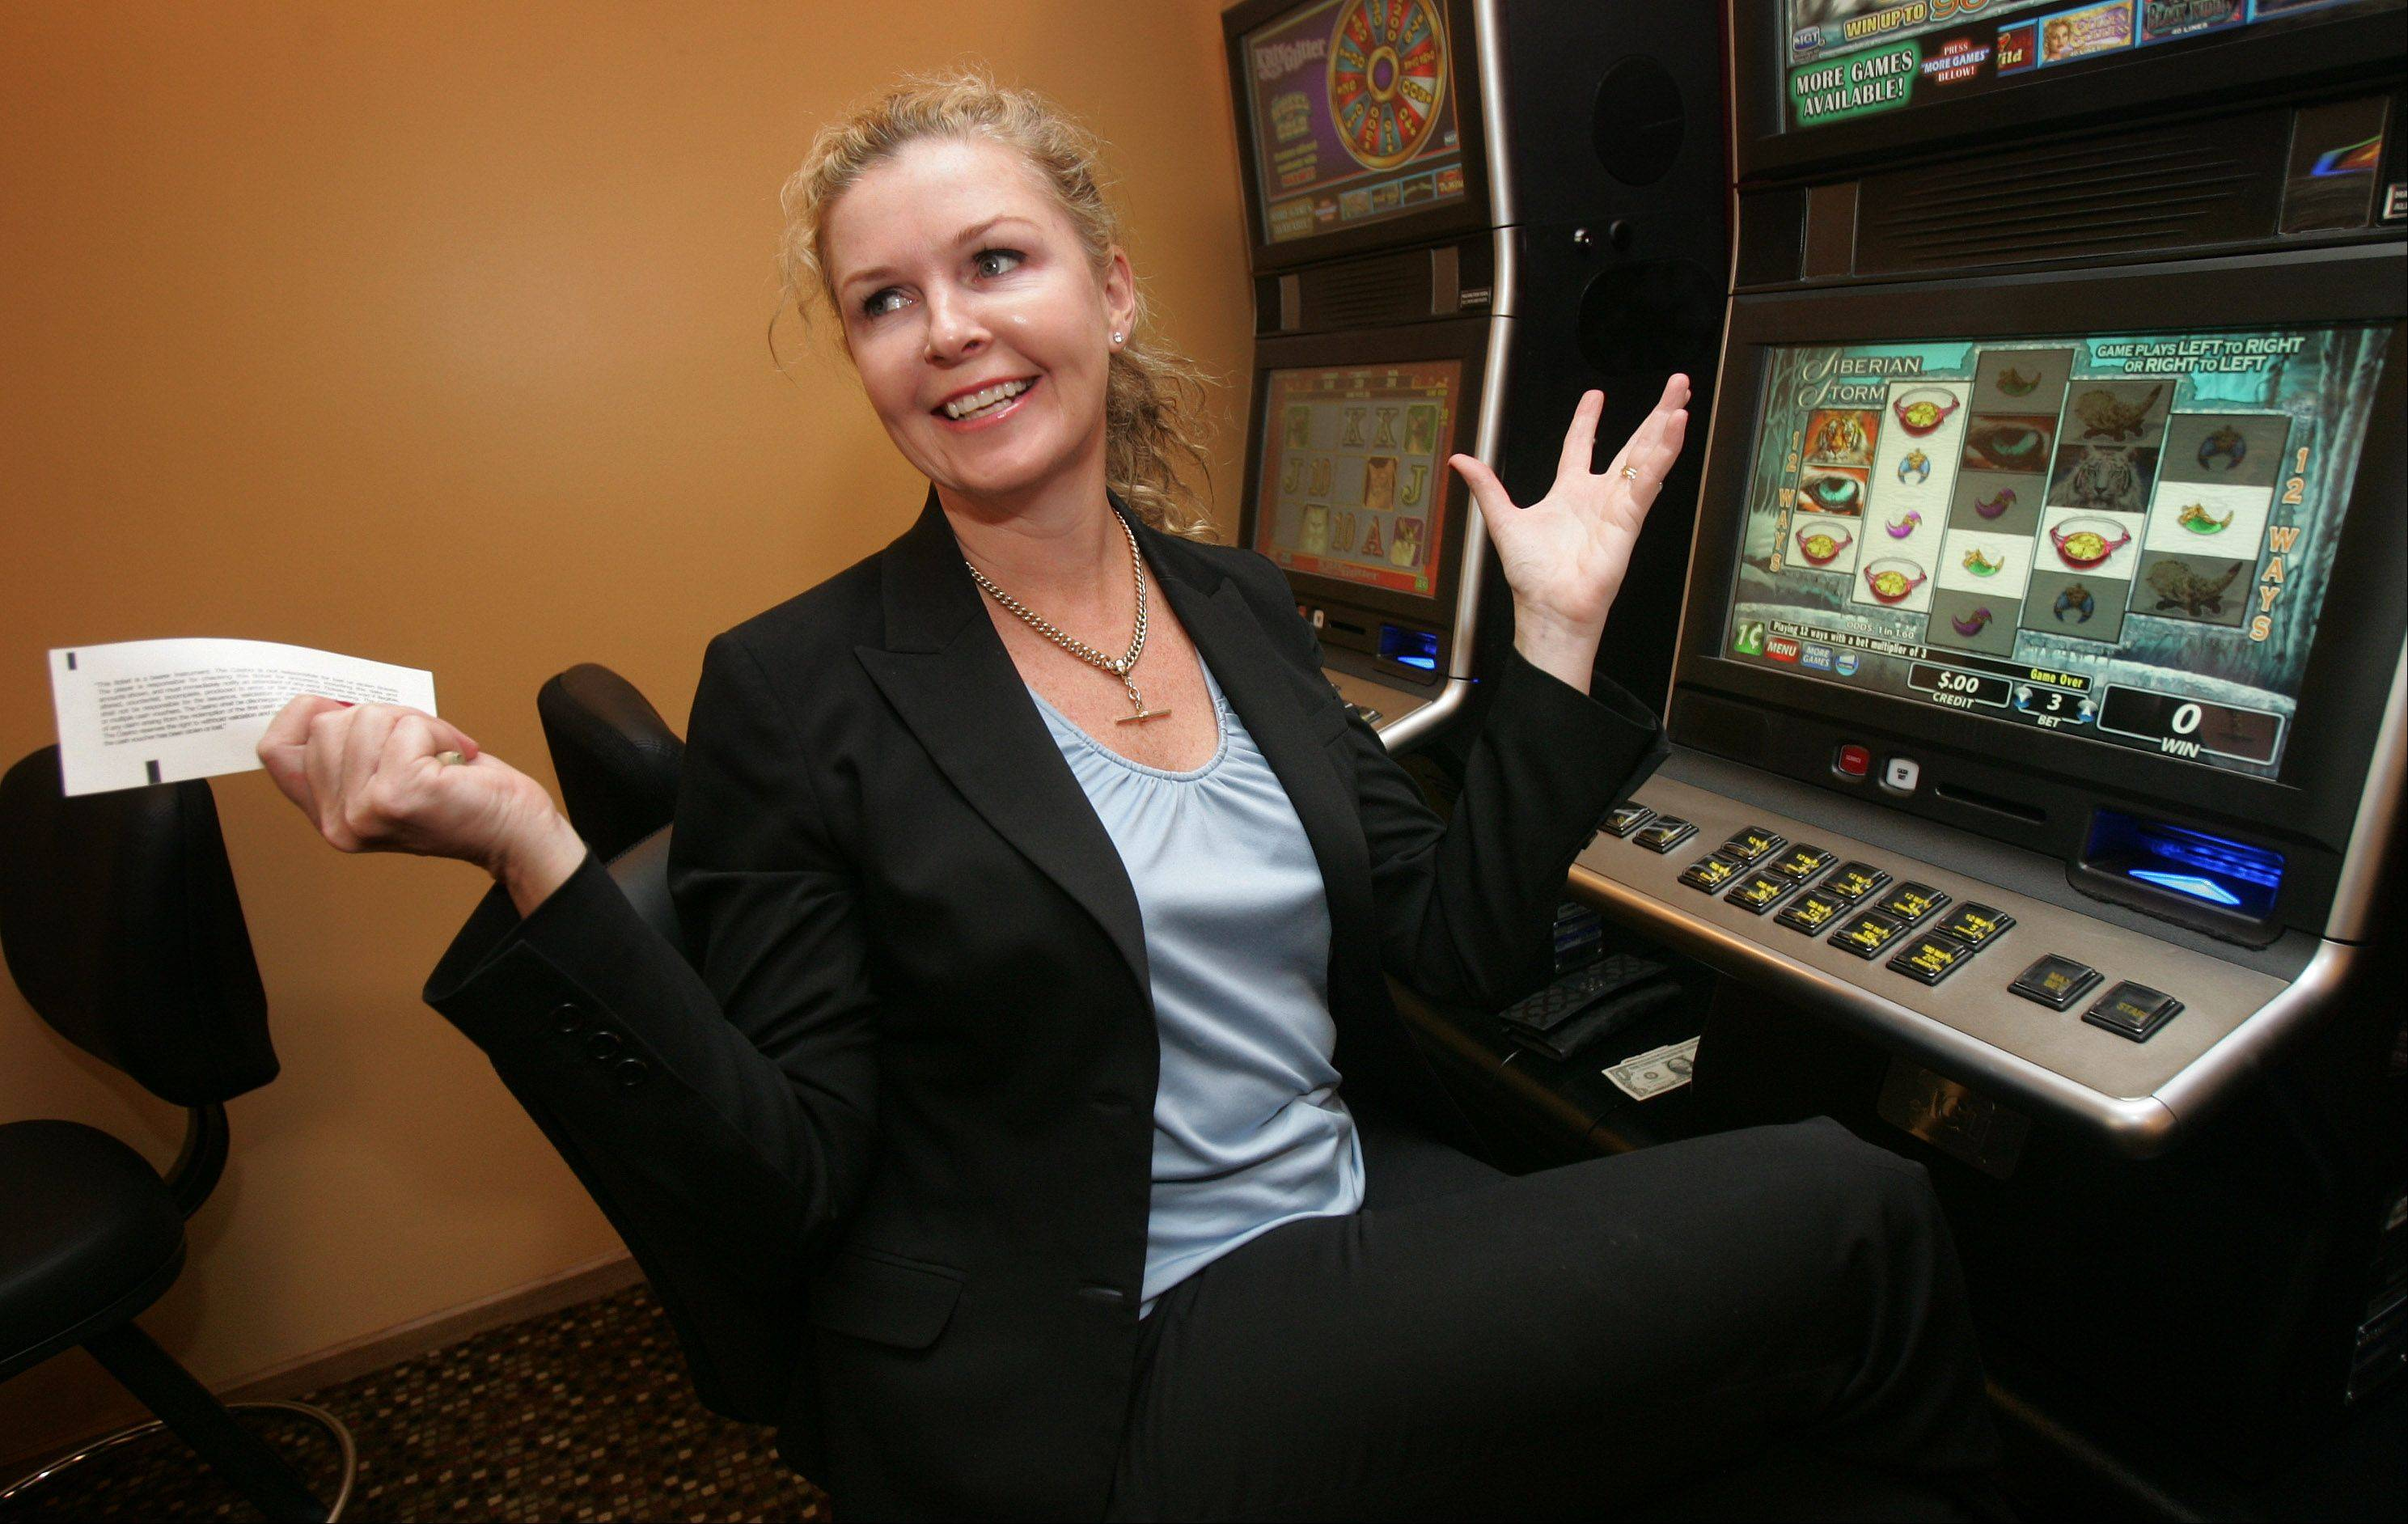 Demonstrating how video gambling works, Lynne Morris, CEO of Morris Gaming, celebrates a win.